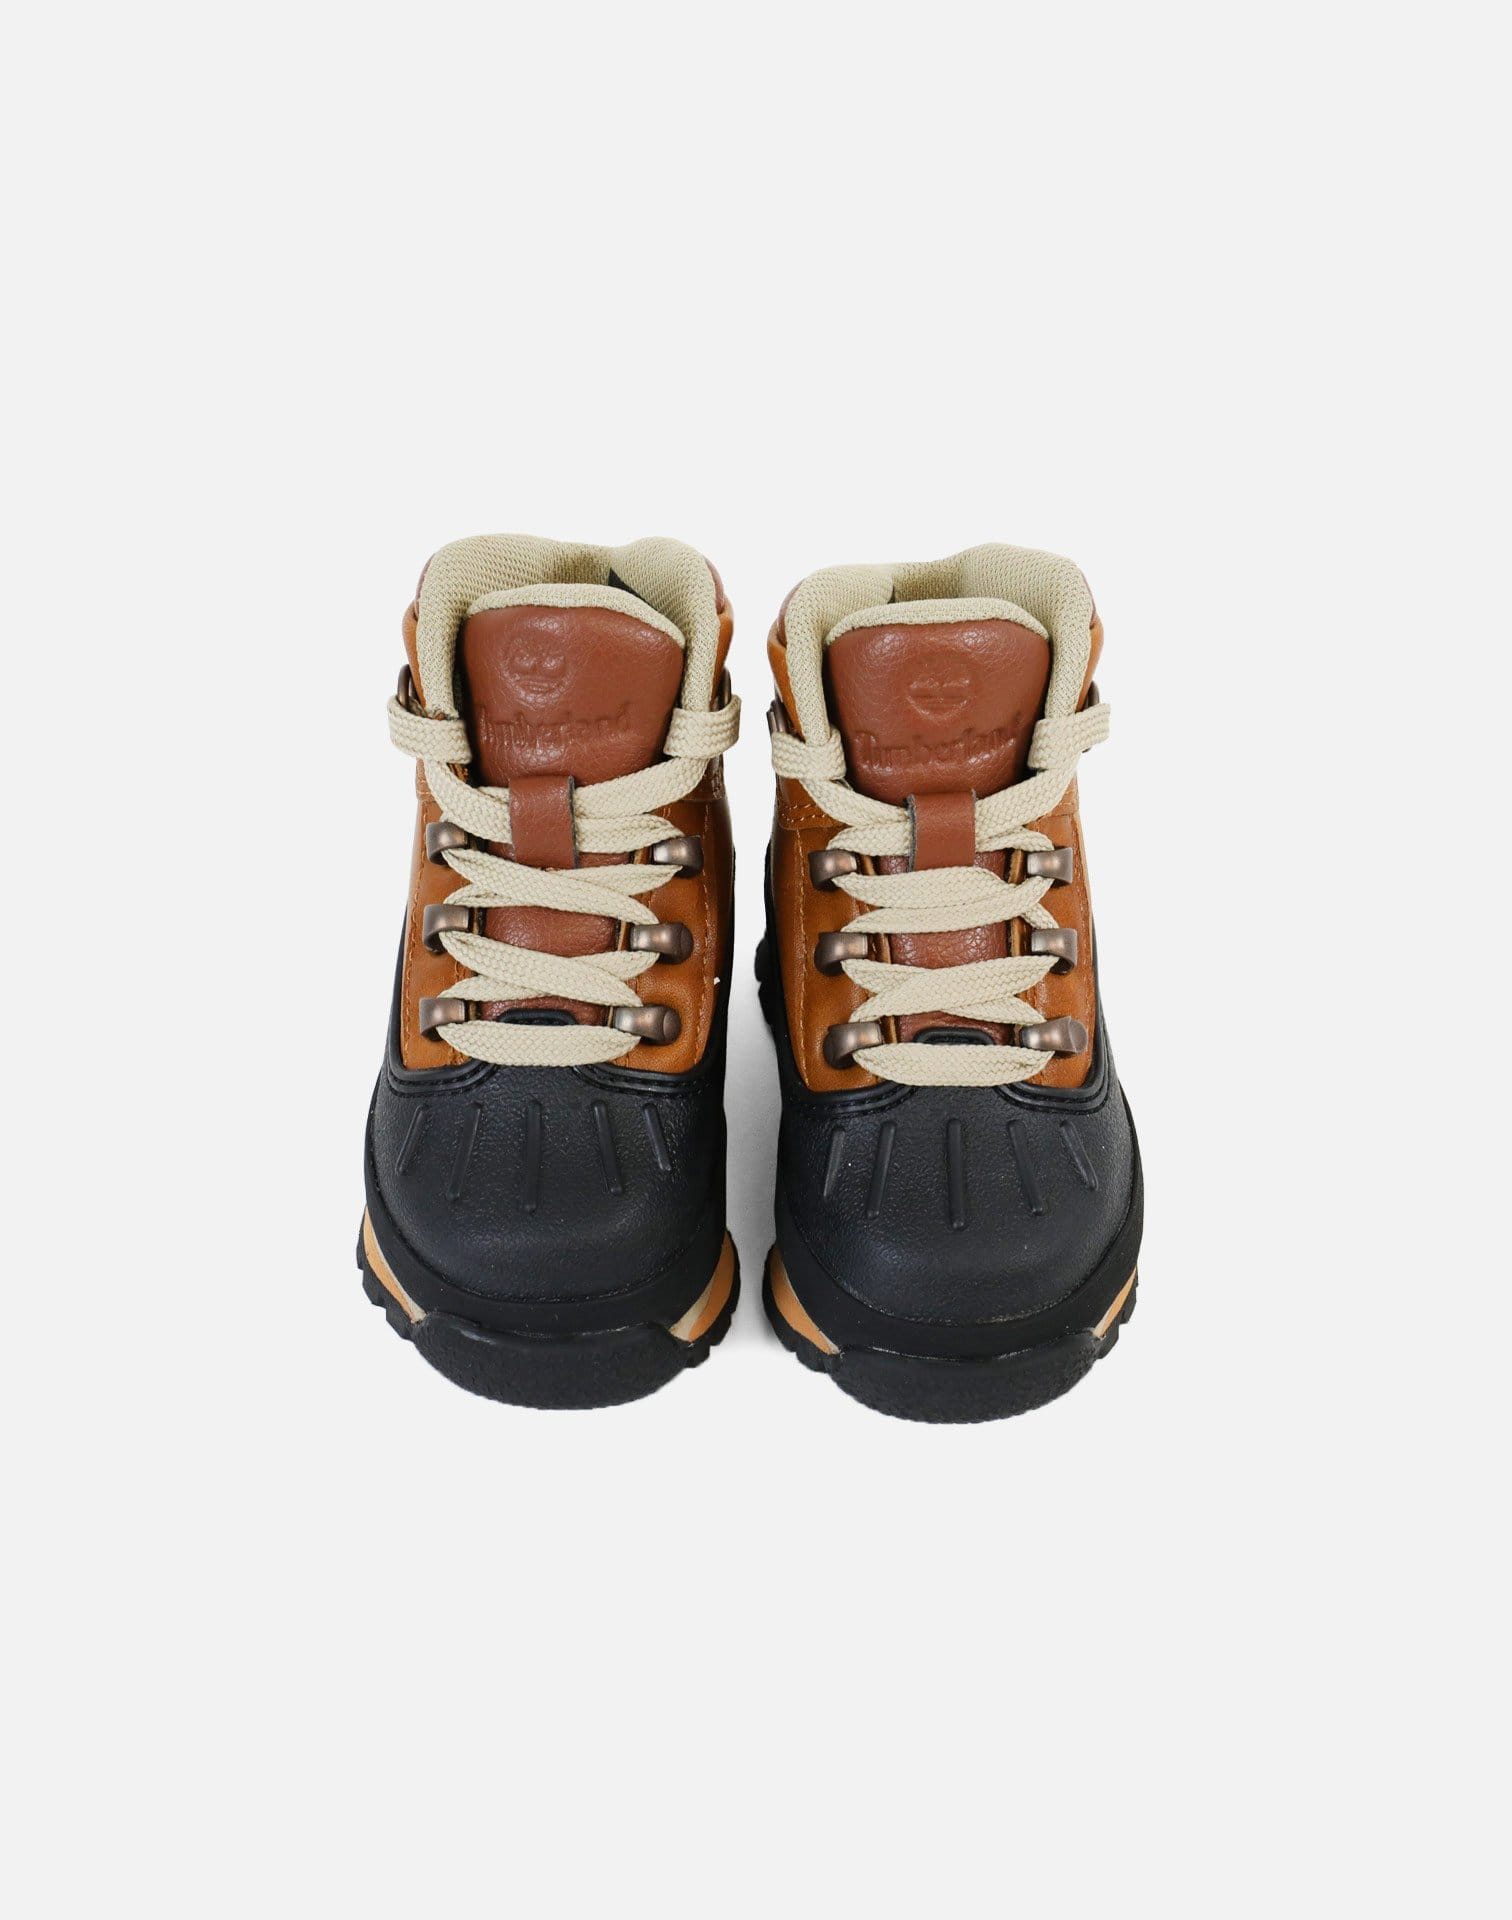 Timberland Shell Toe Euro Hiker Boots Infant (Burnt Orange/Black)